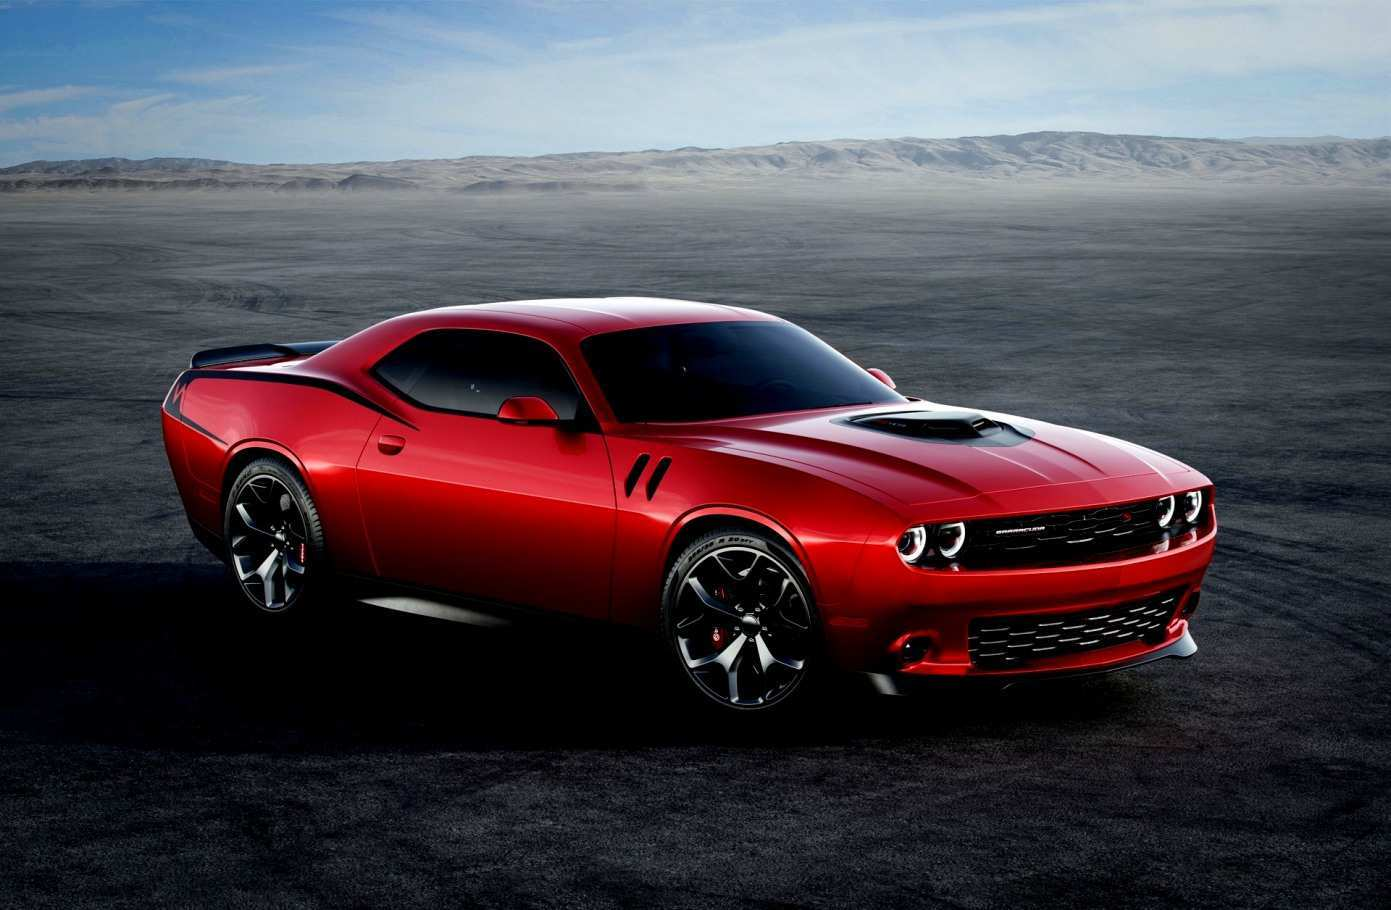 77 All New 2019 Barracuda Picture